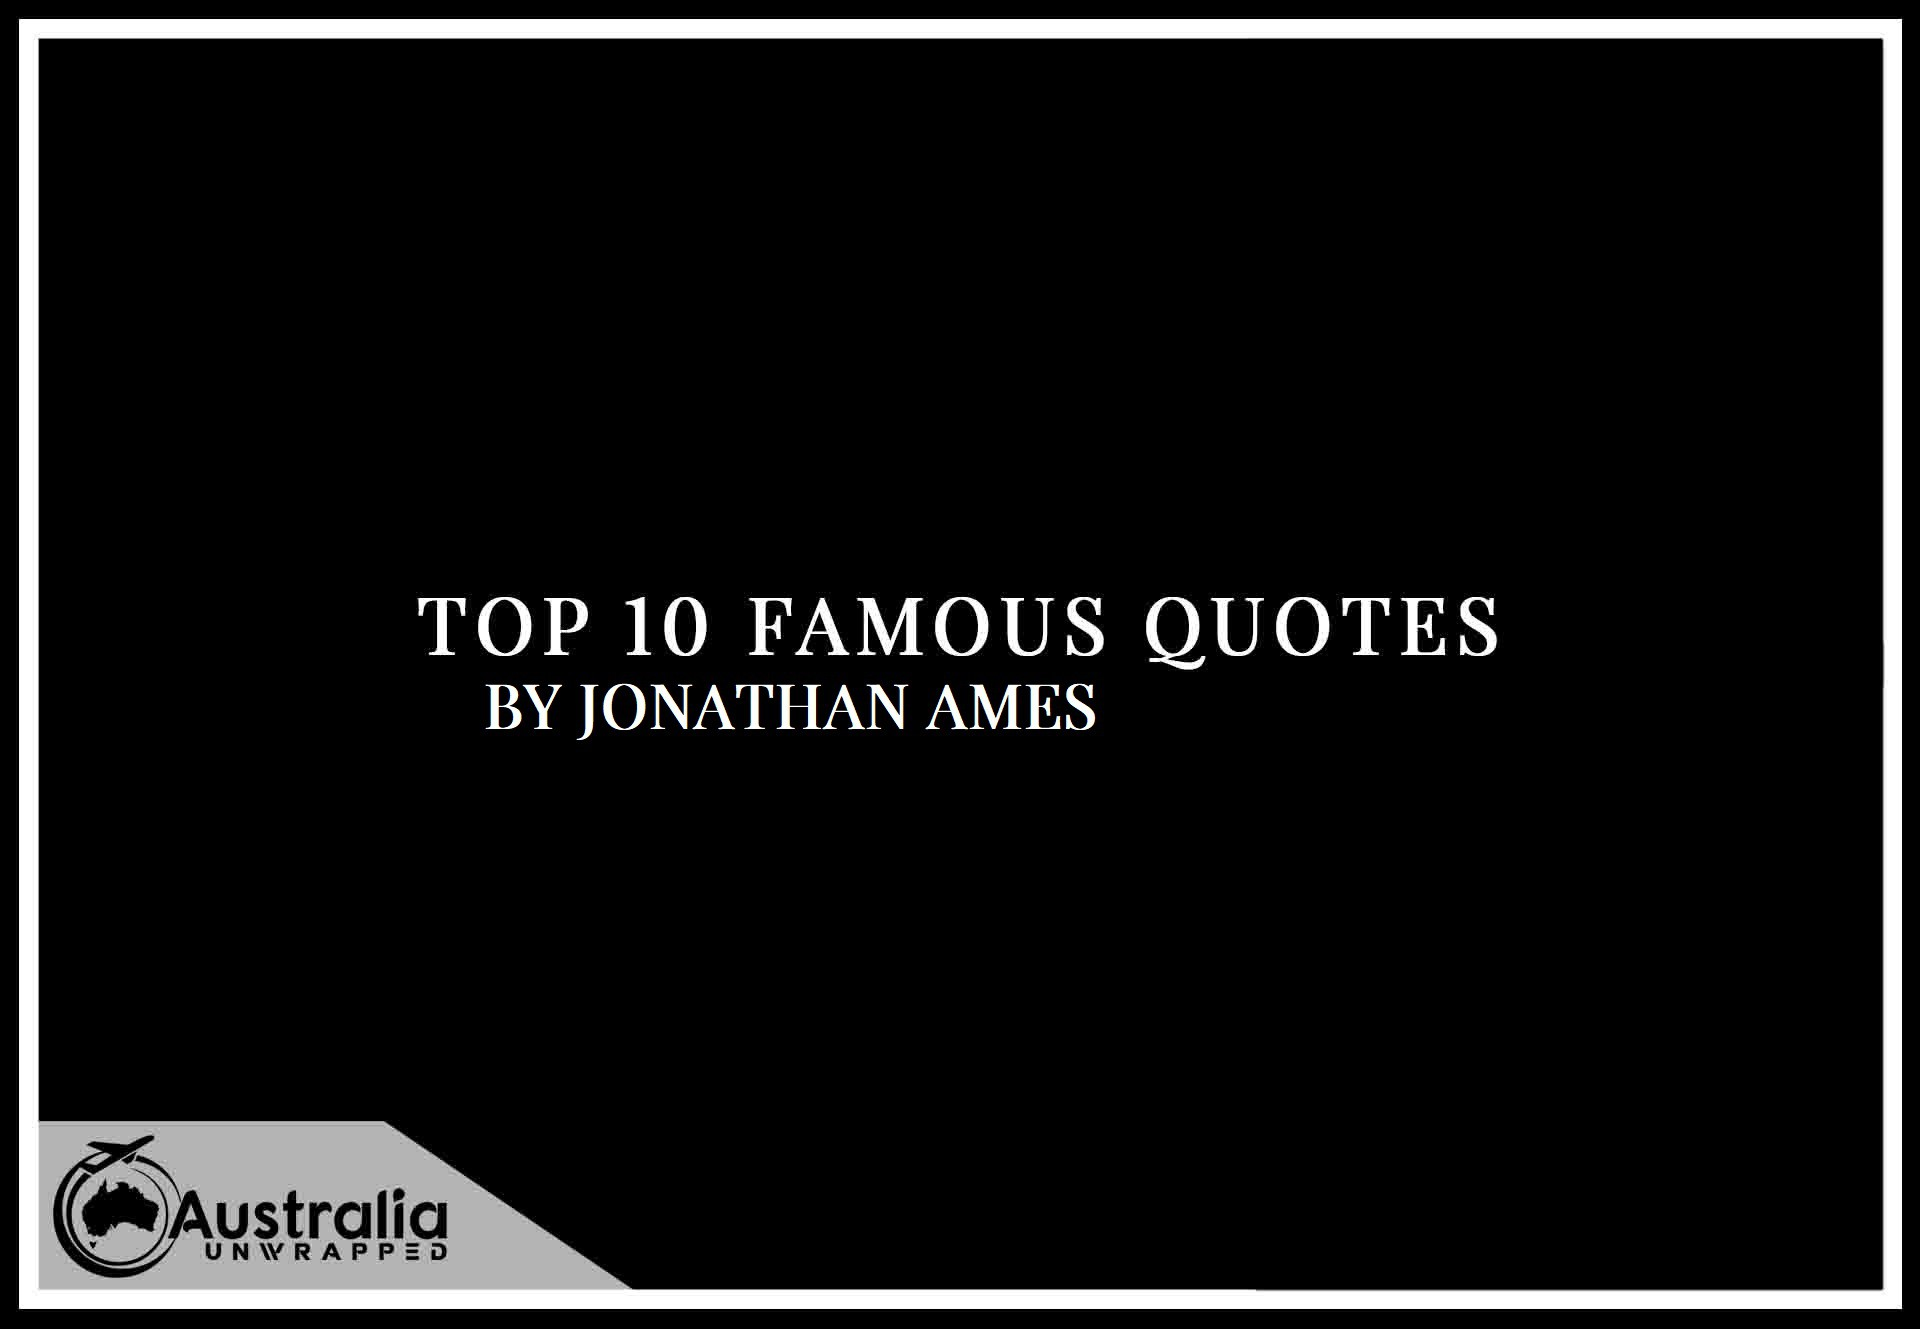 Top 10 Famous Quotes by Author Jonathan Ames